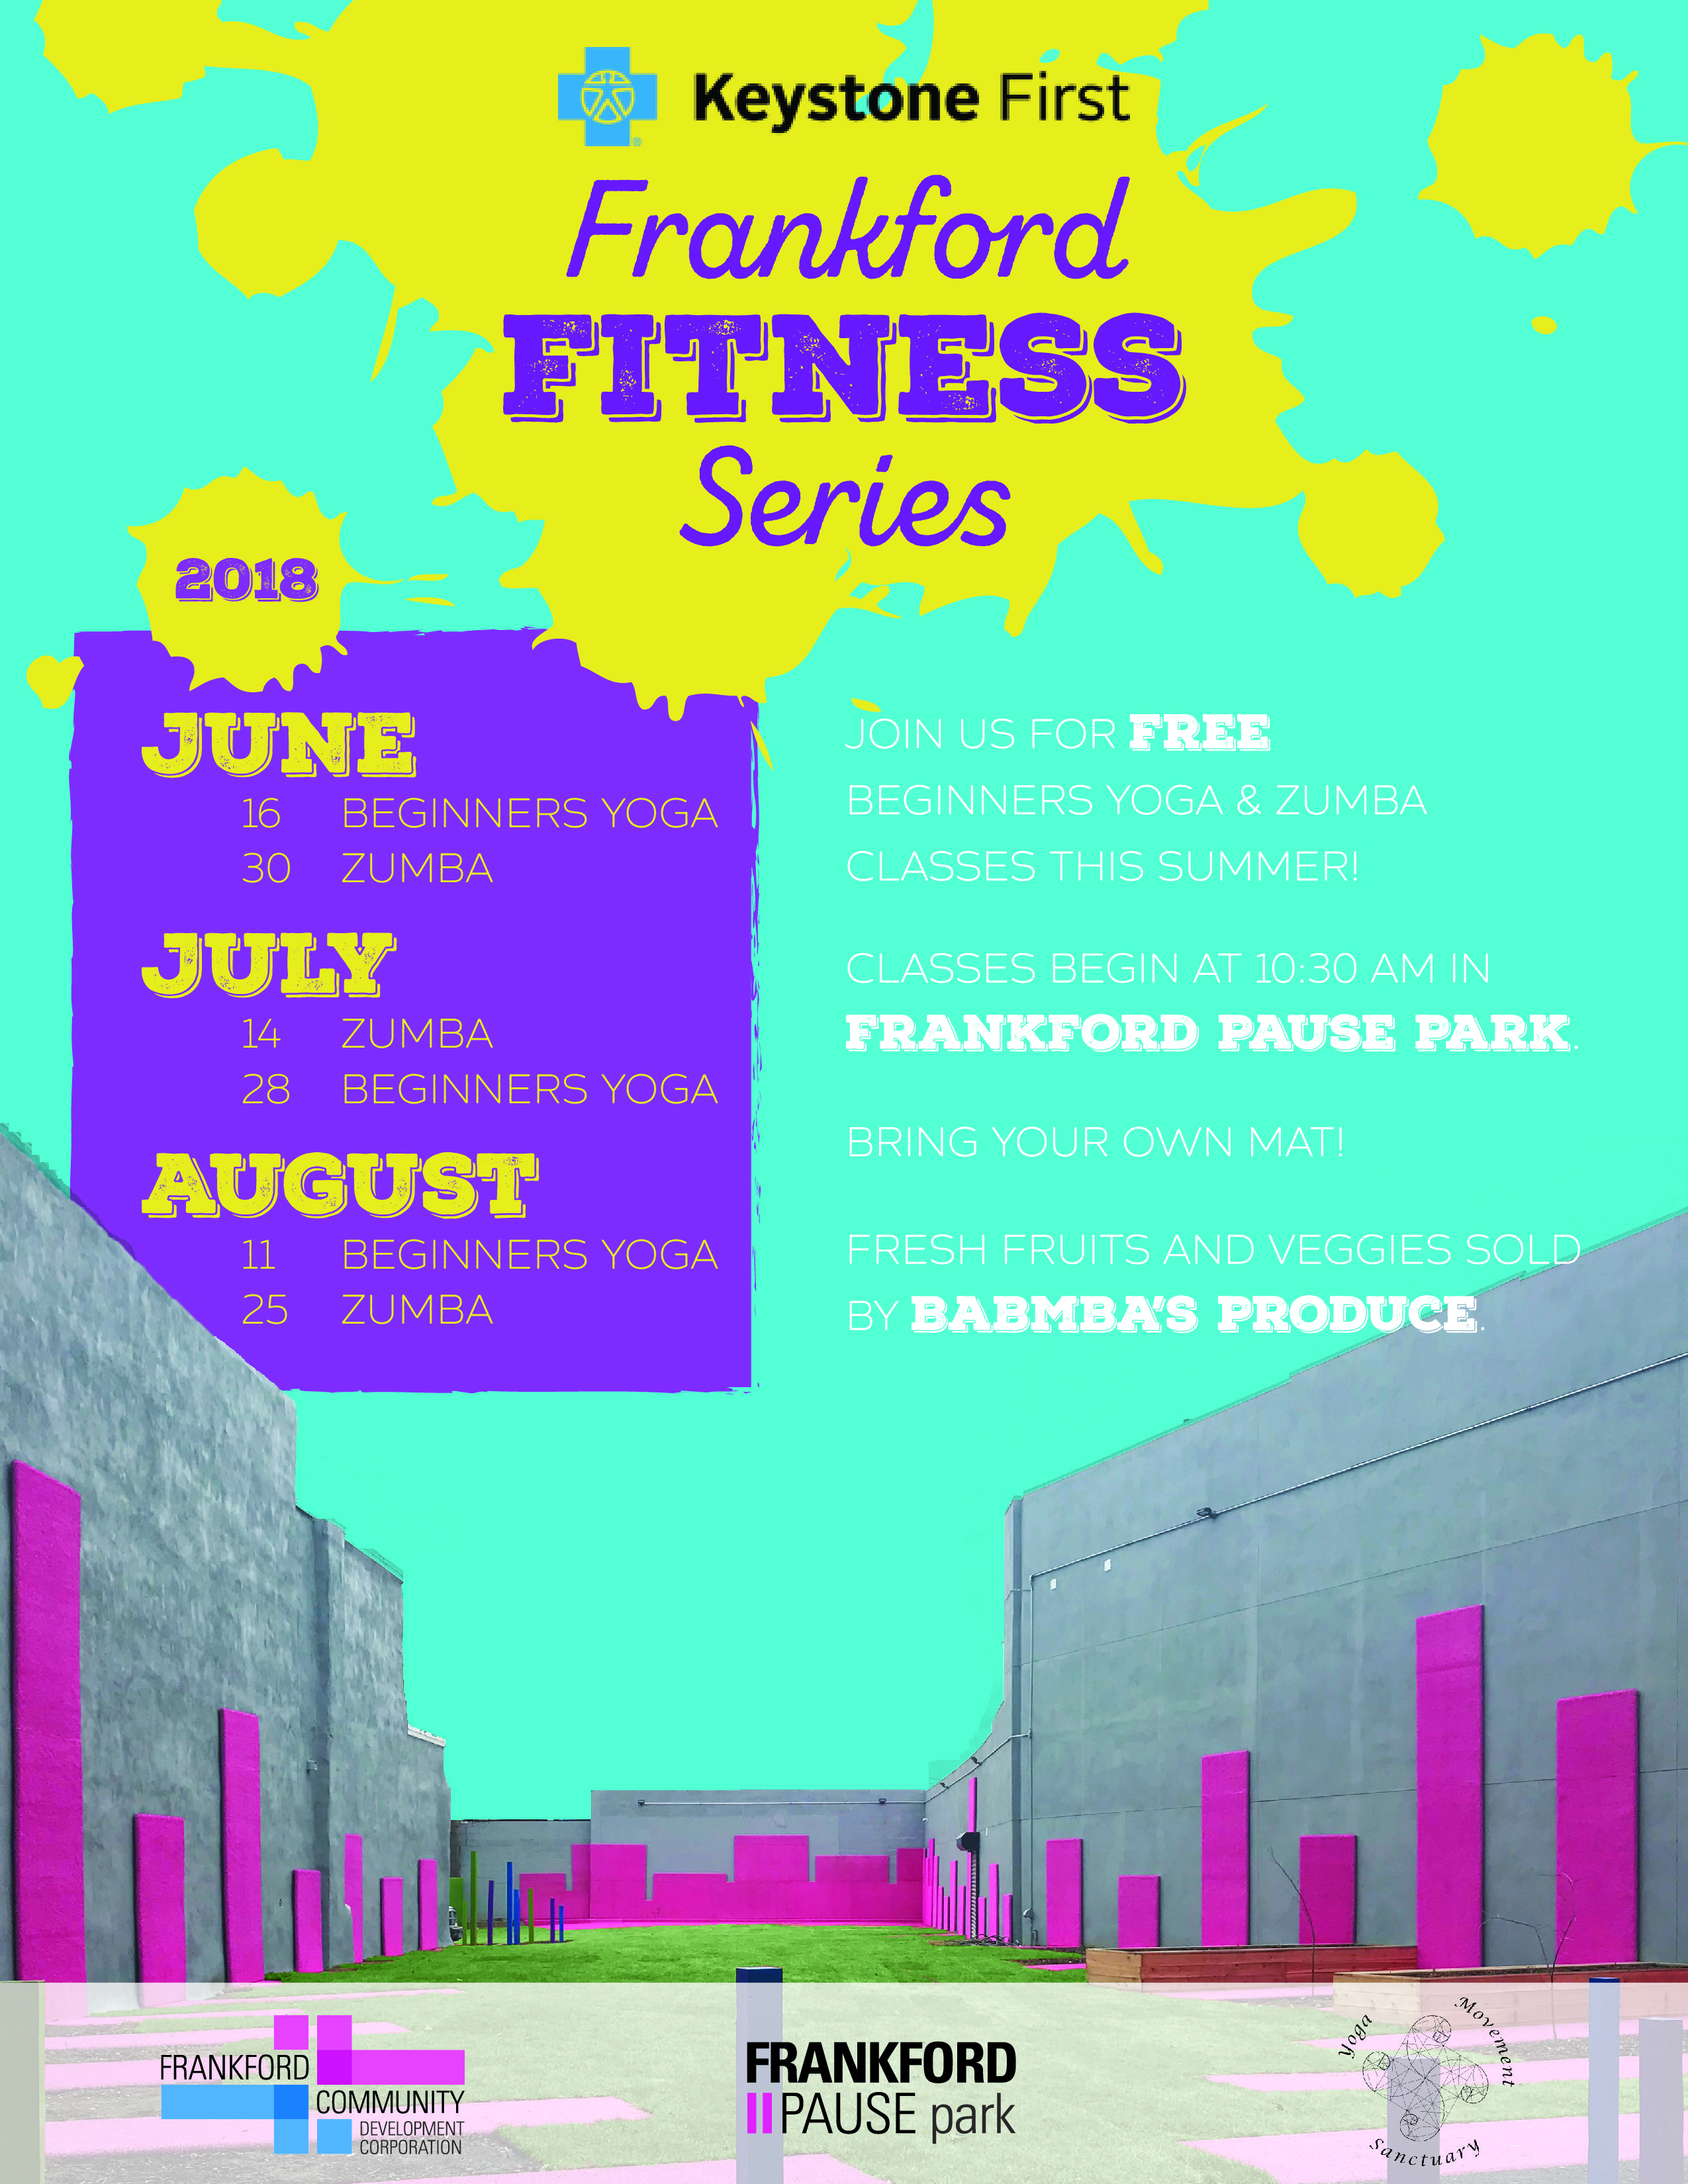 Beginner's Yoga-Frankford CDC Fitness Series - Philly Powered